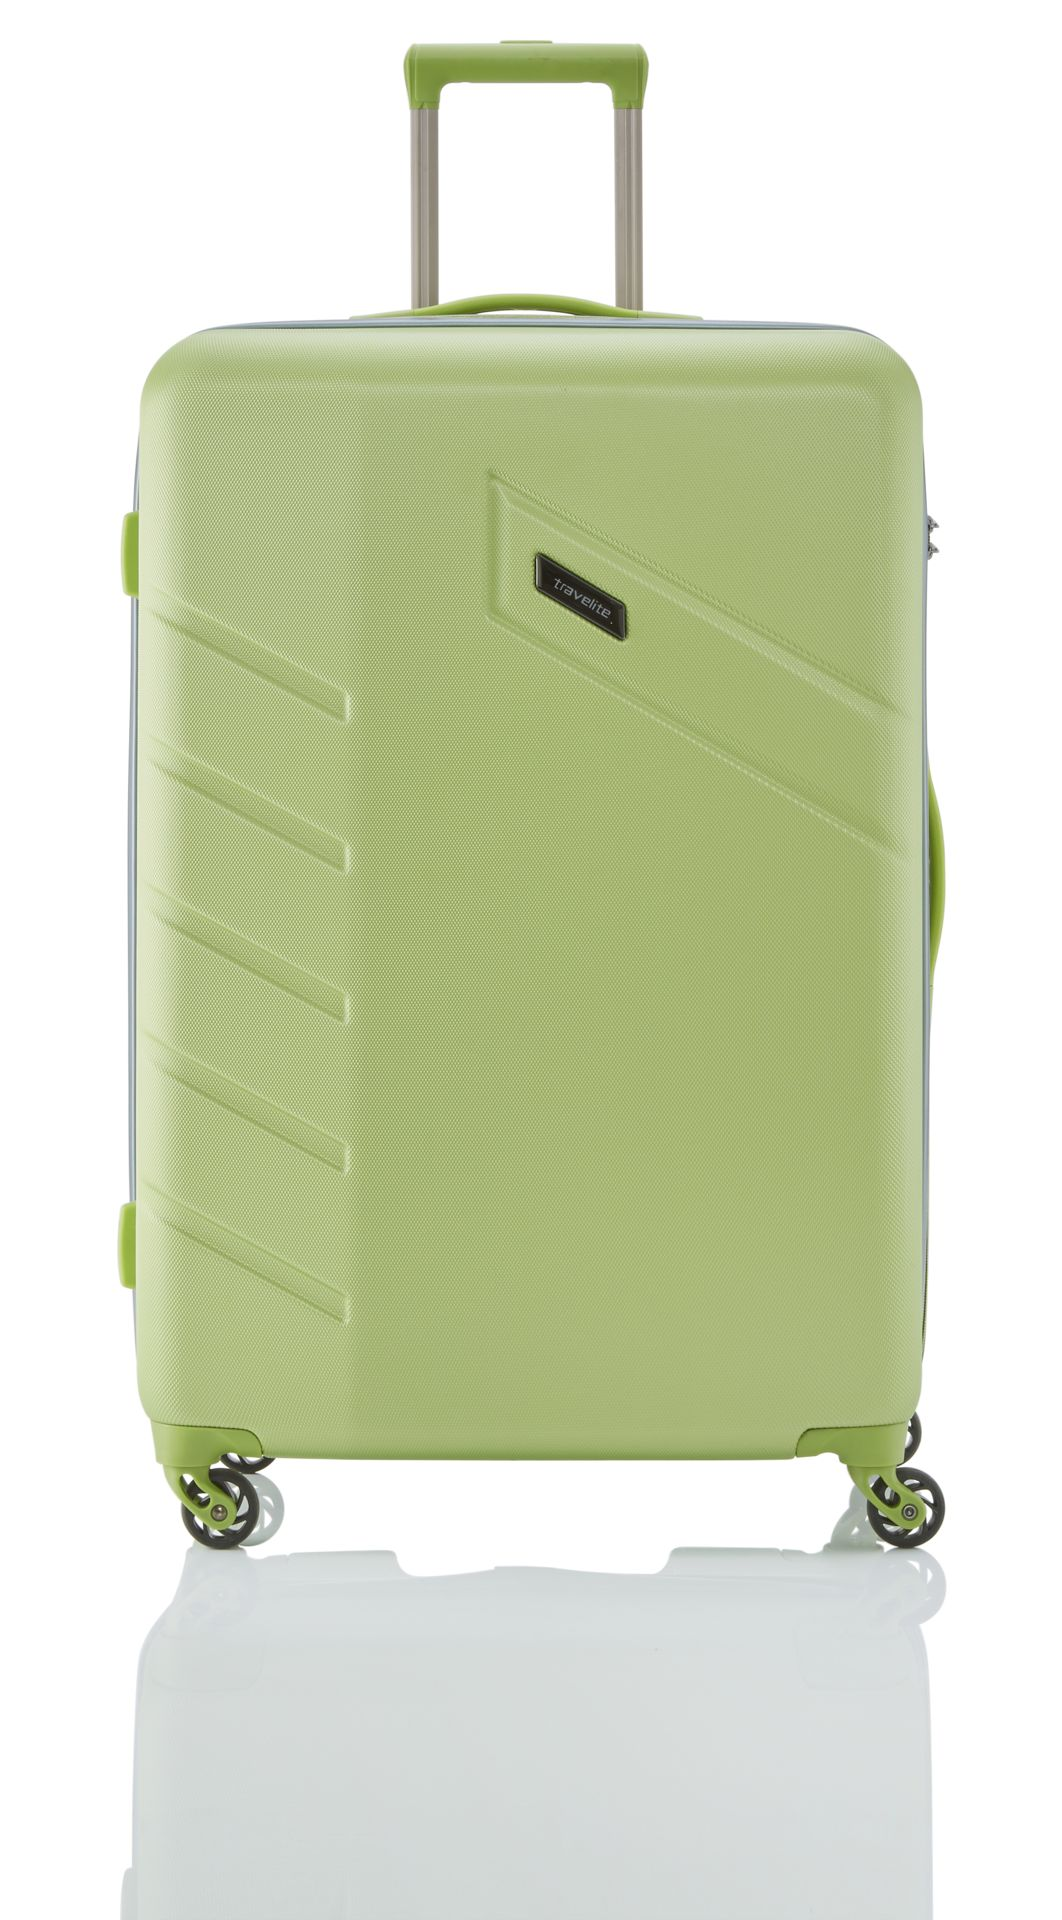 Travelite Tourer 4w S,M,L Light green – sada 3 kufrů